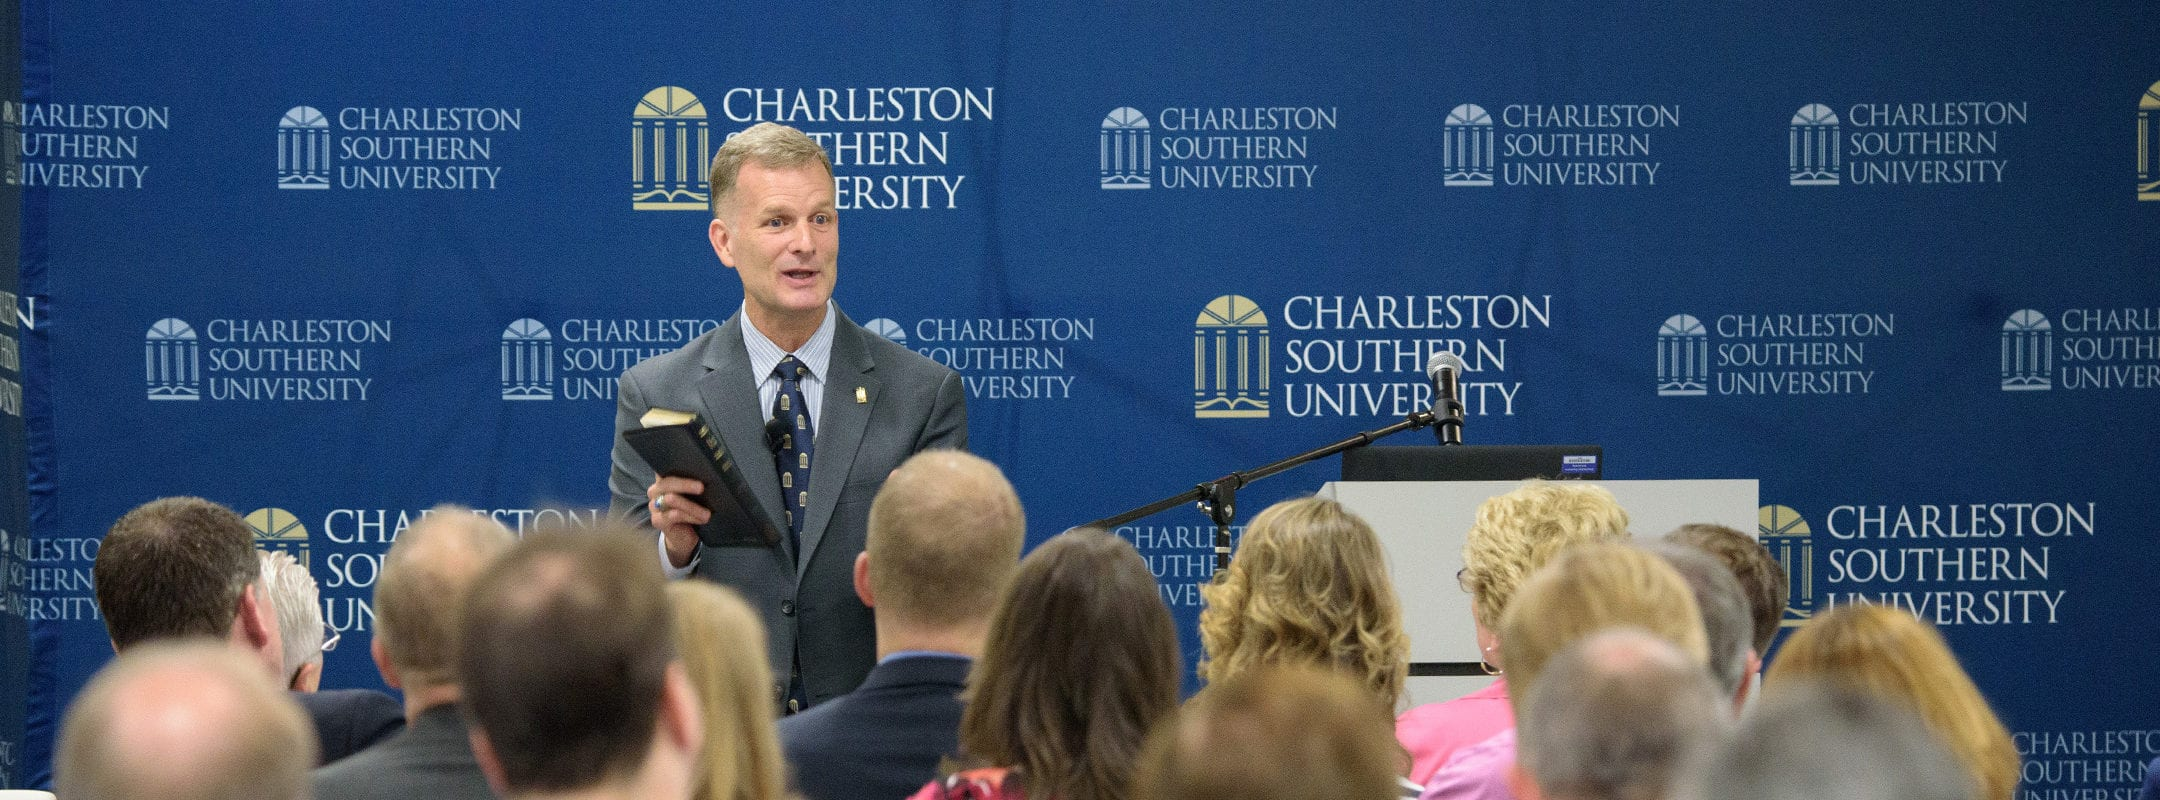 President Costin speaks to a crowd at a Board of Visitors meeting.